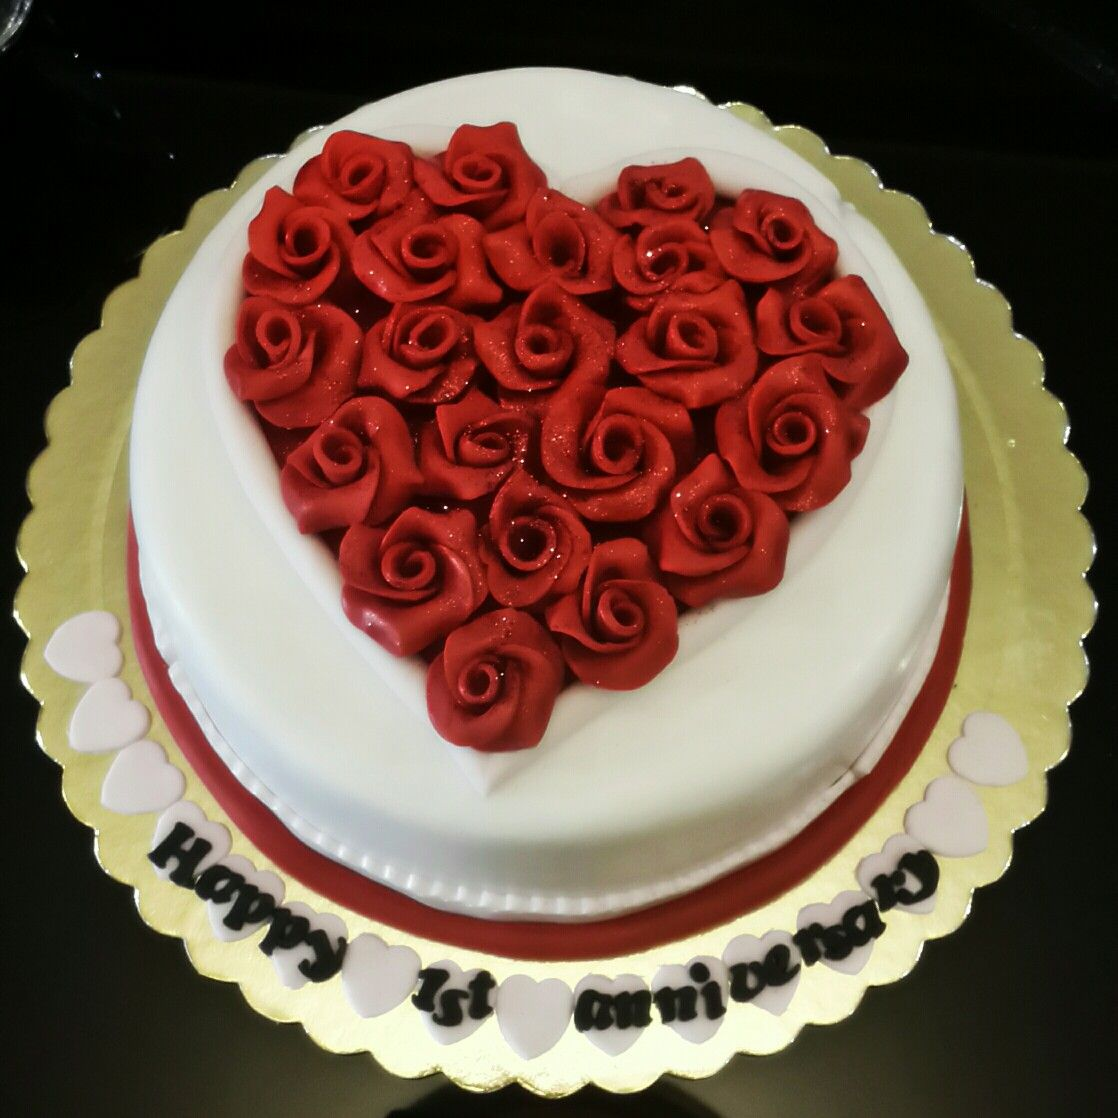 Cake Ideas For Wedding Anniversary: Anniversary Cake Designs, 1st